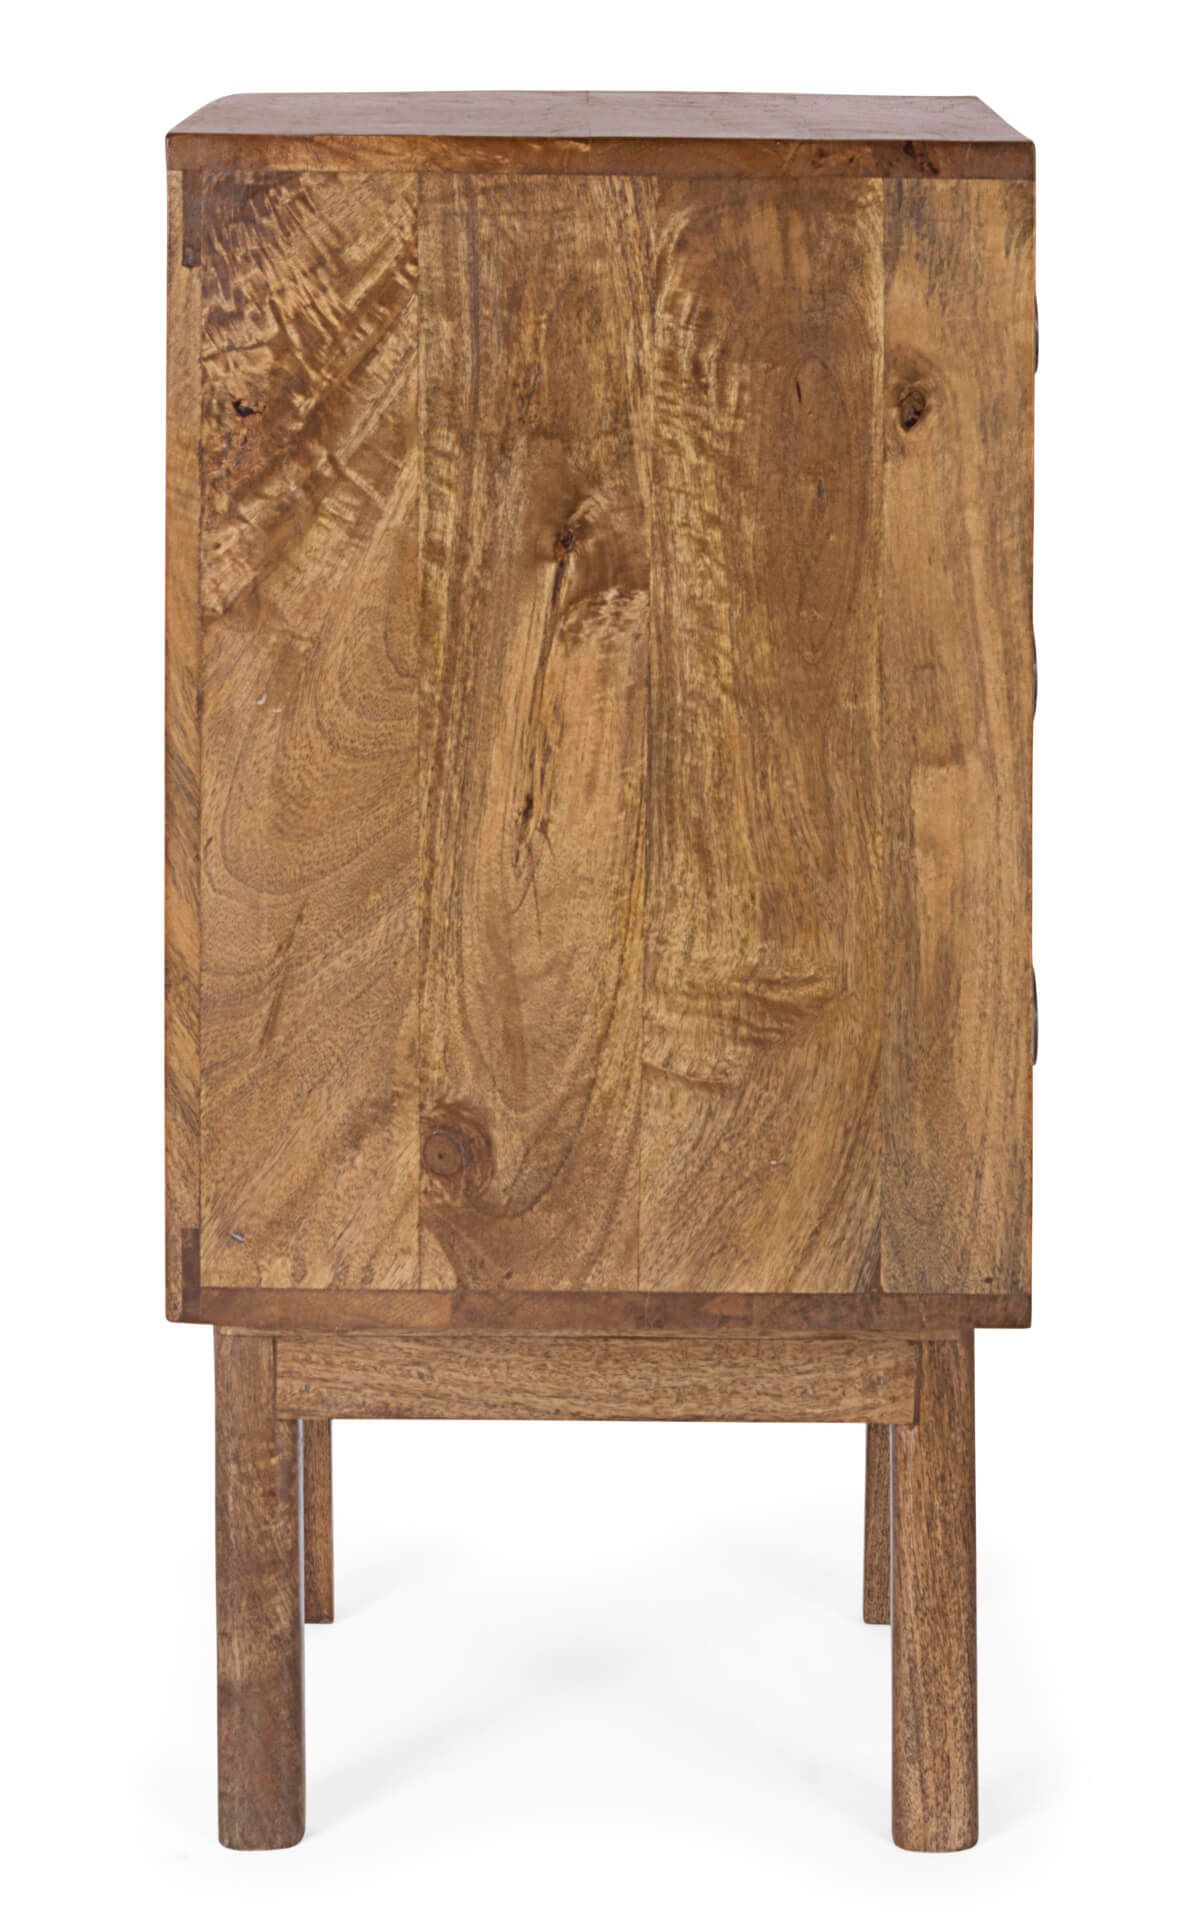 MUZZA chest of drawers sylvester with 3 natural drawers